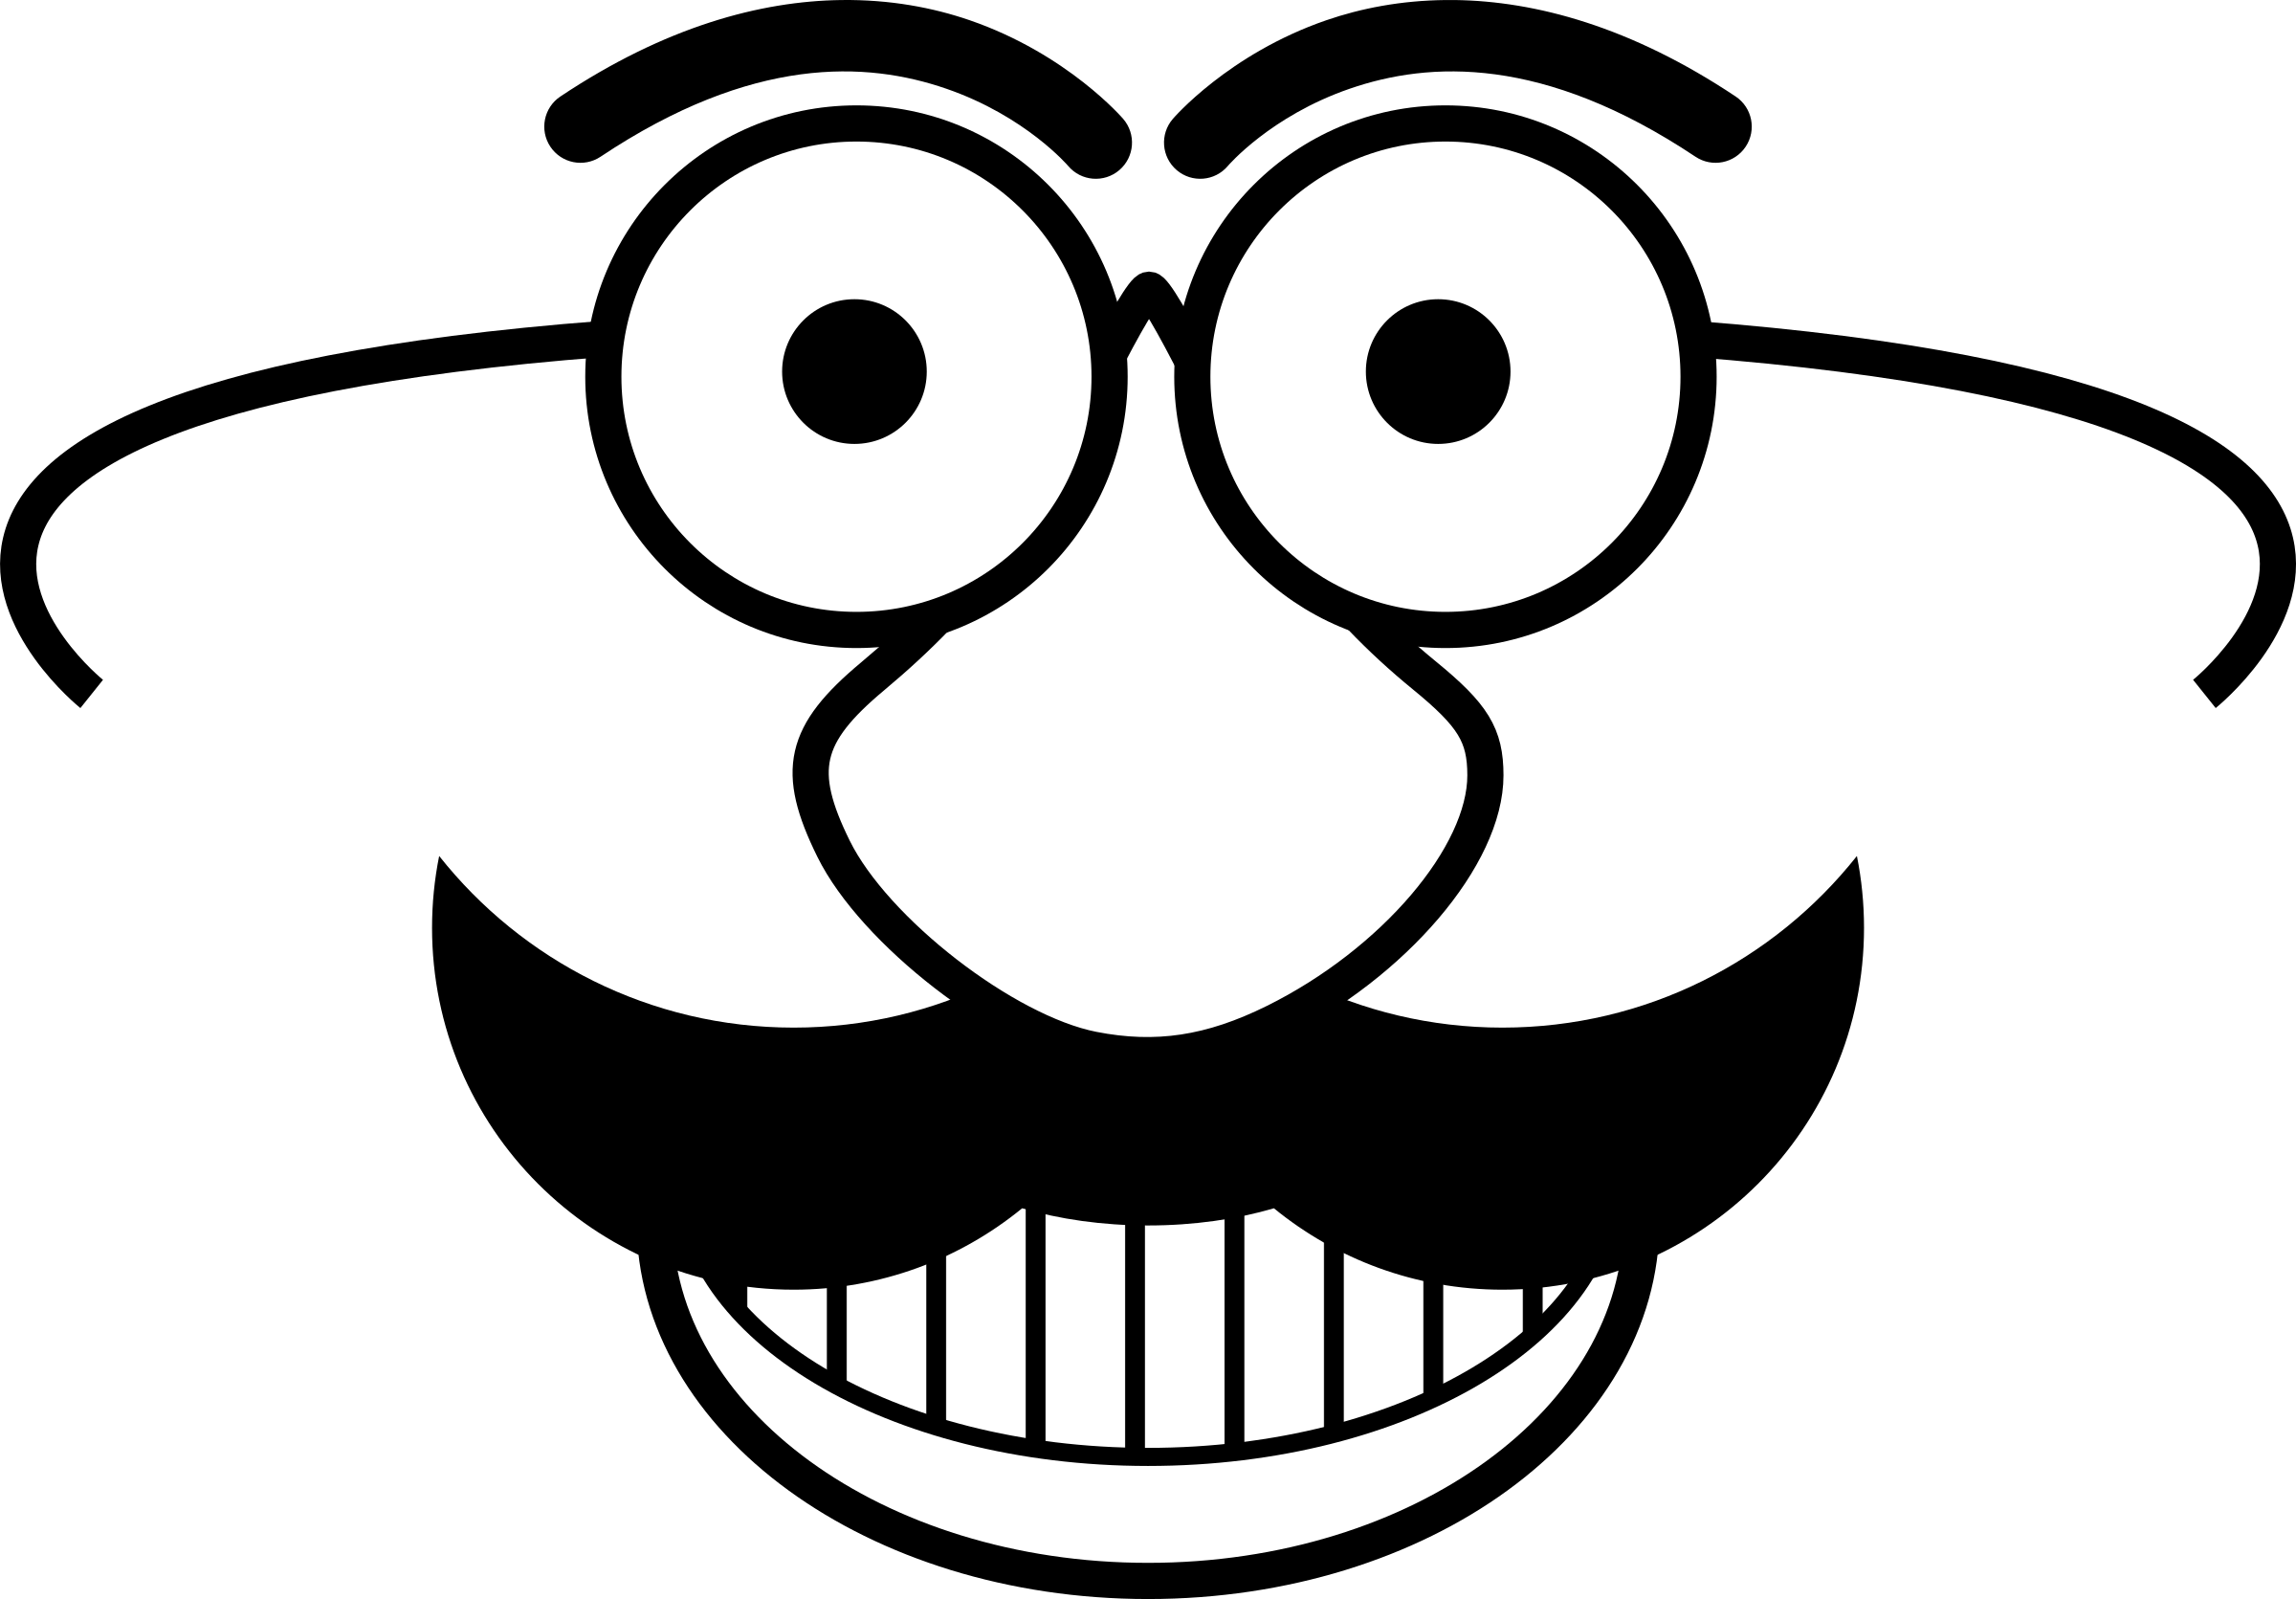 Smiley face black and white png. Displaying images for clipart